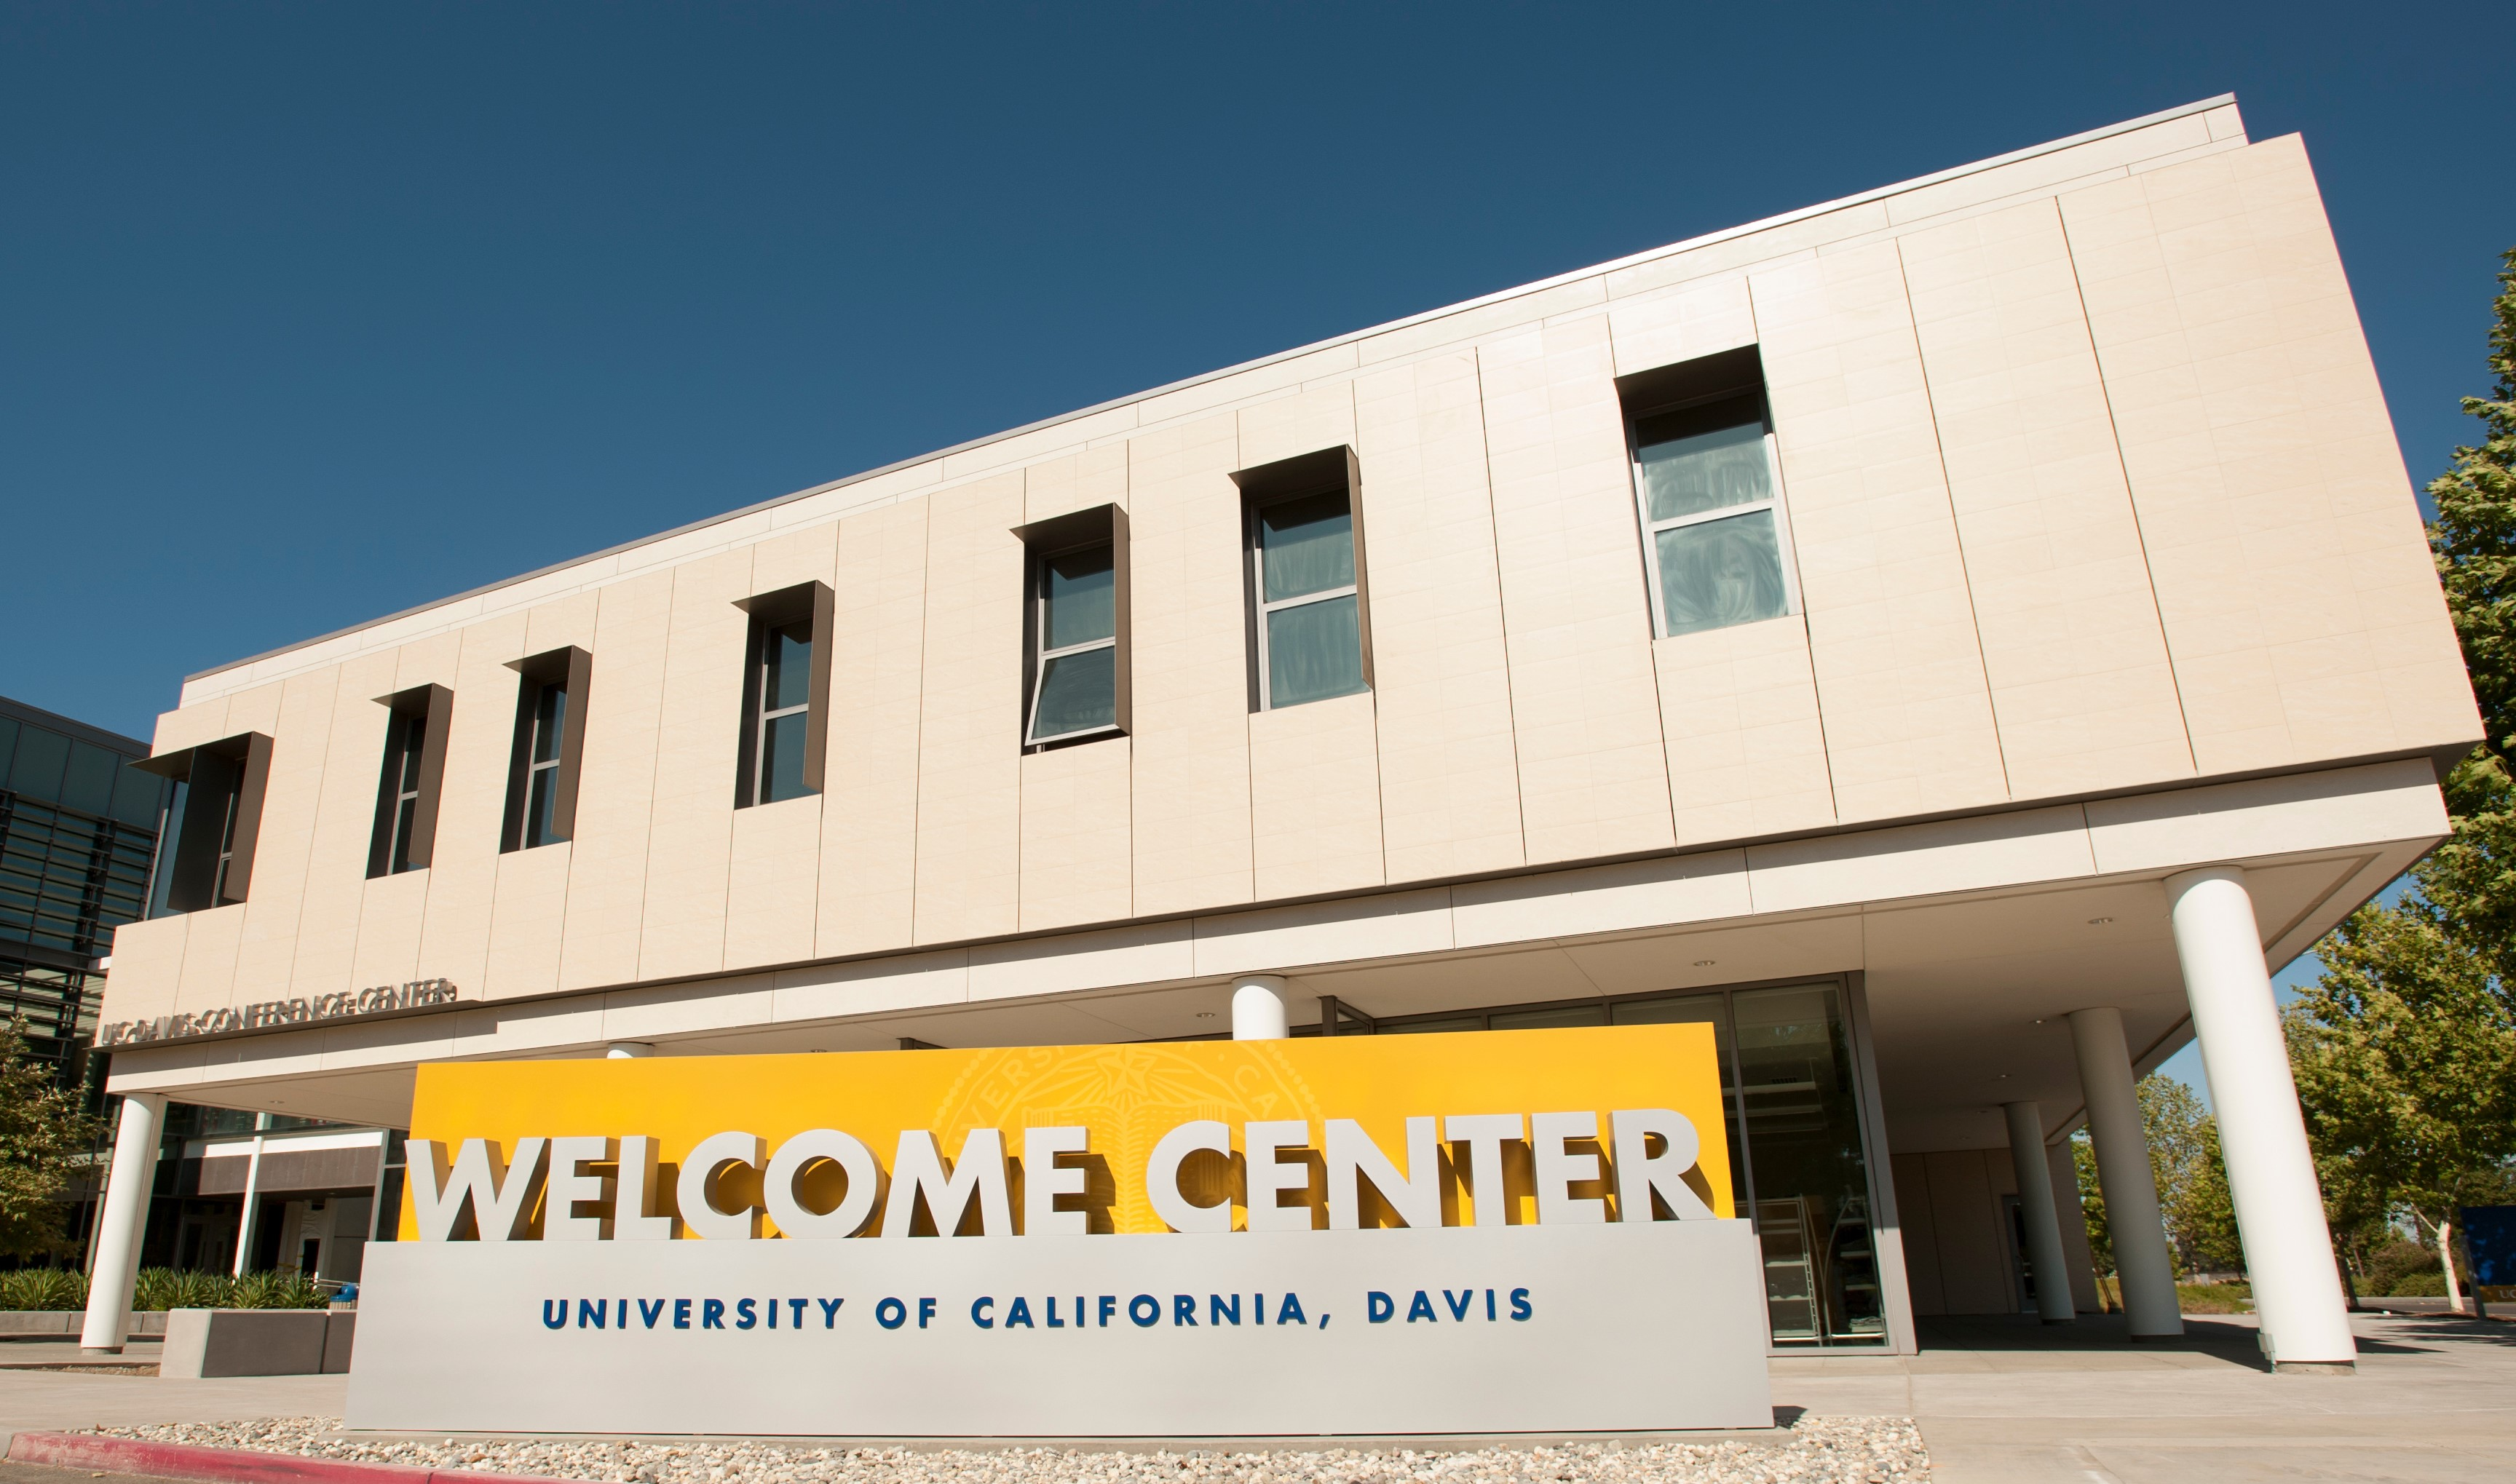 UC Davis Welcome Center